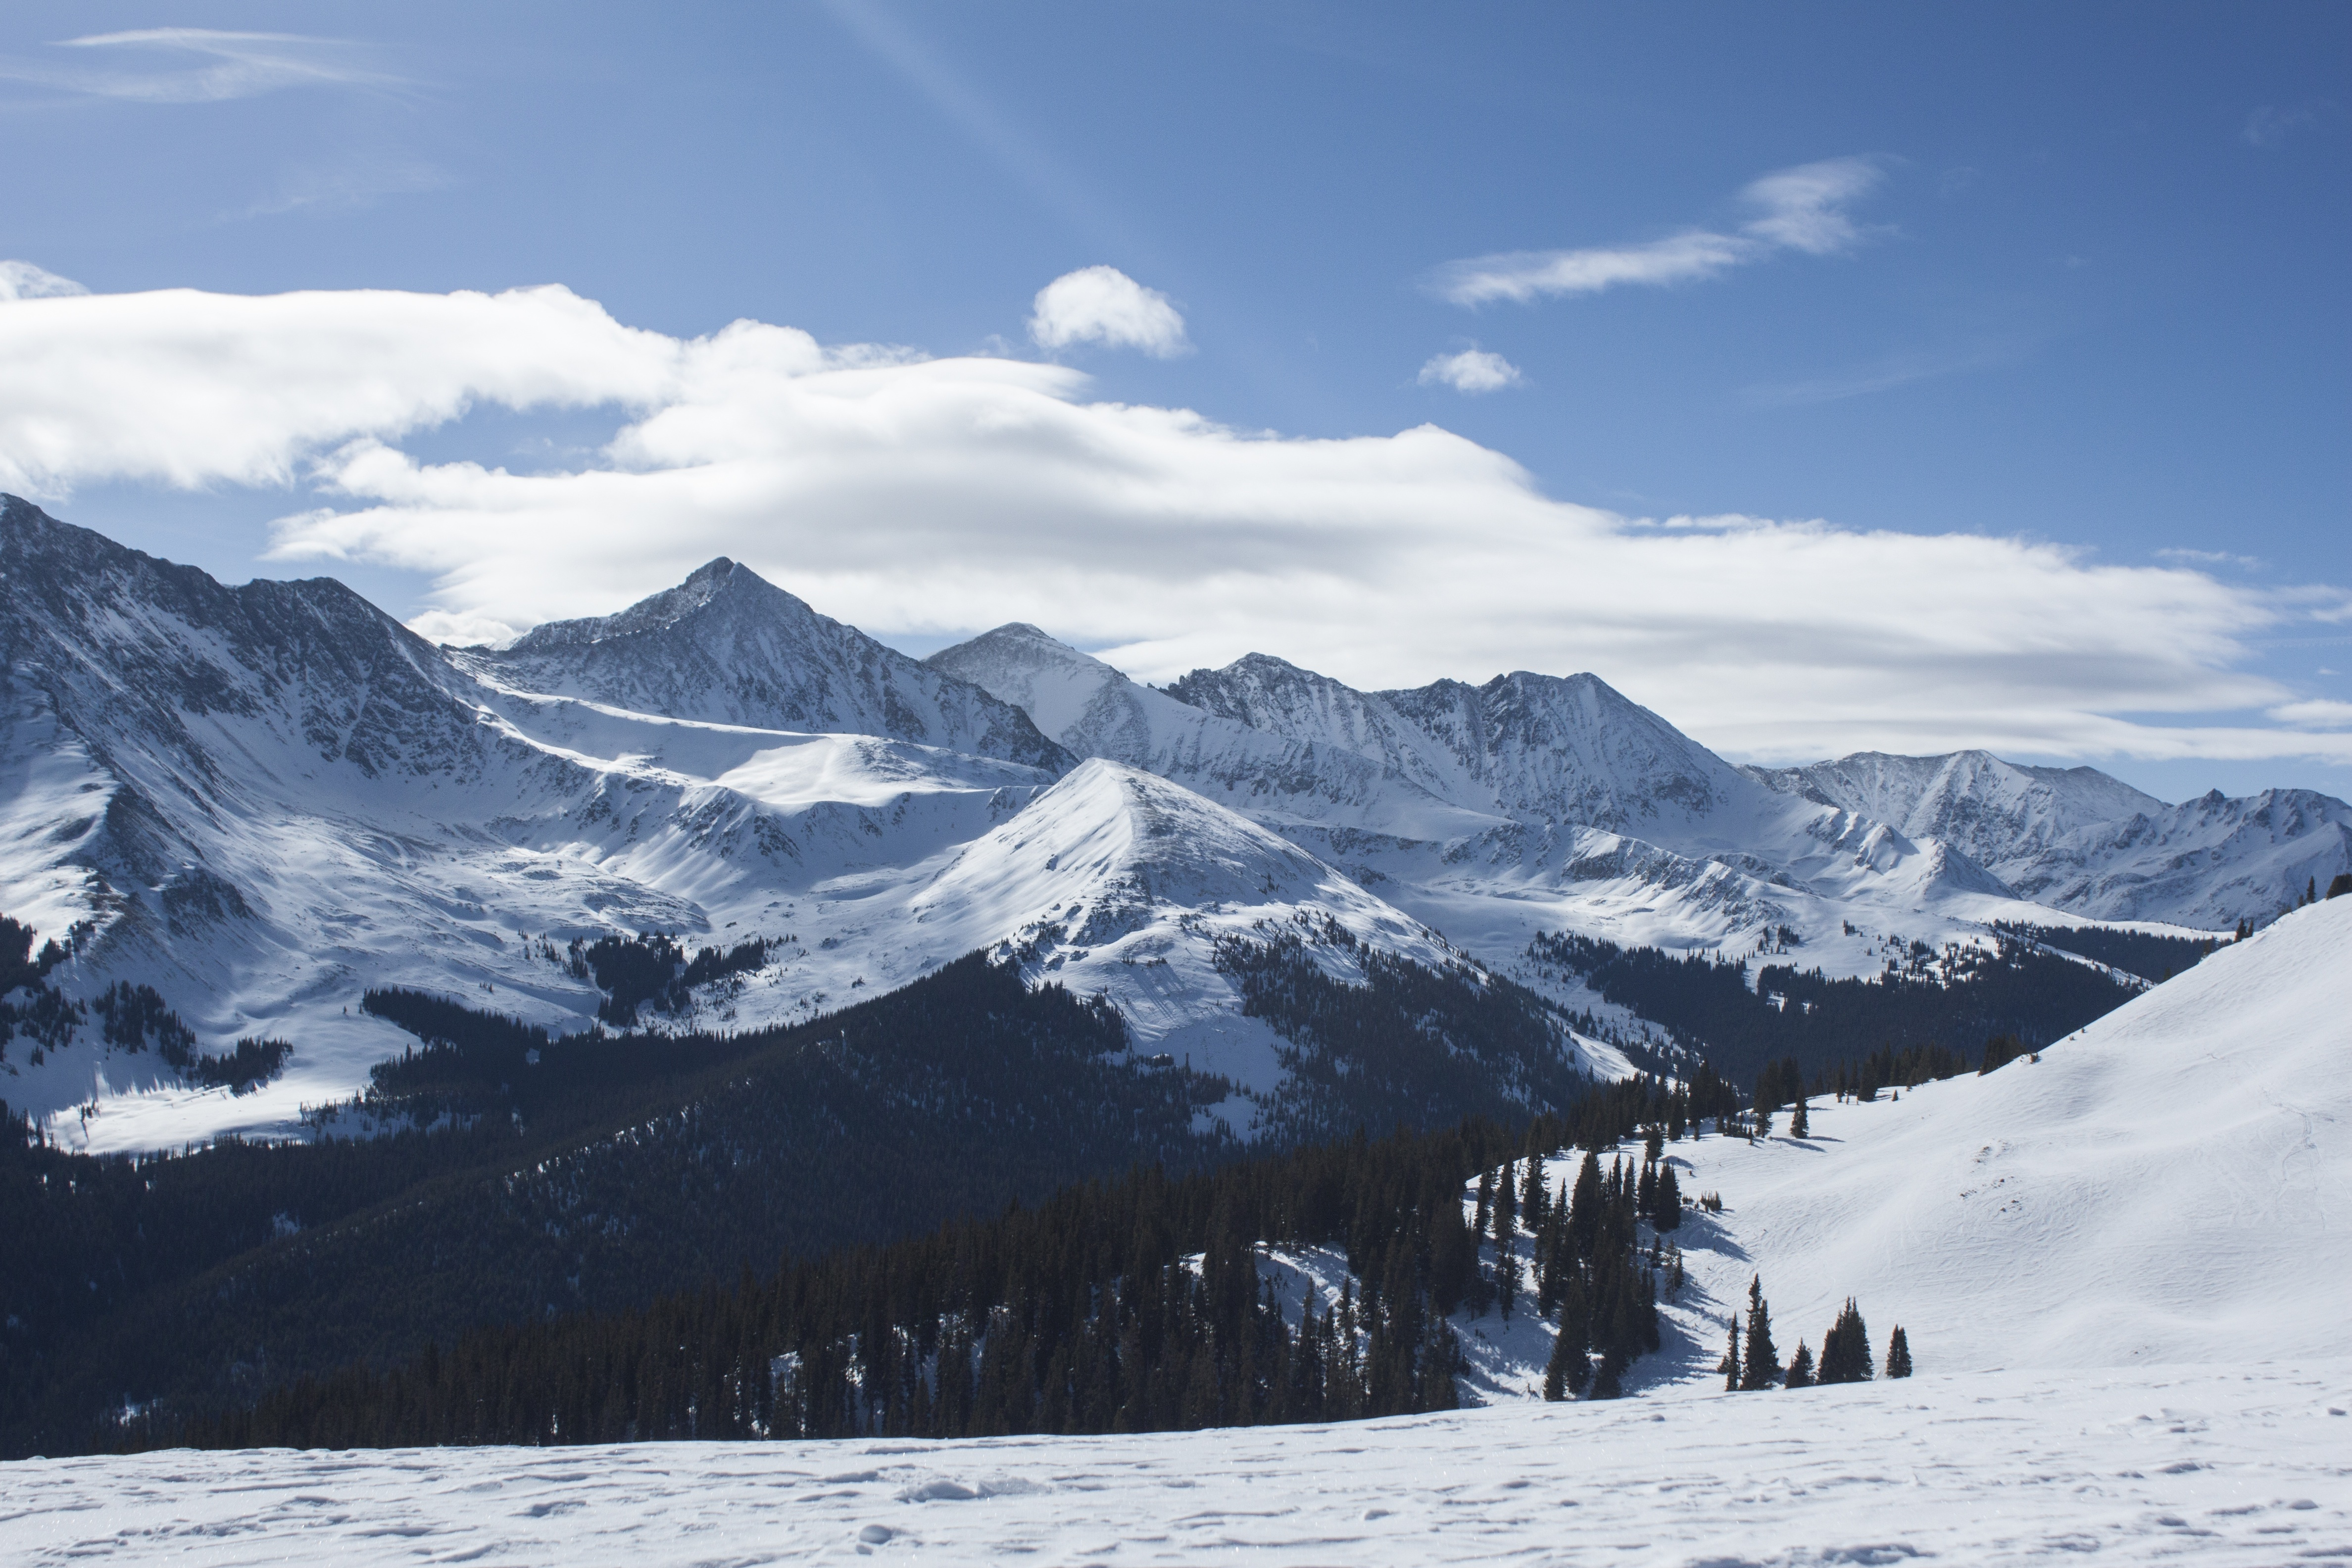 118083 download wallpaper Nature, Mountains, Snow, Vertex, Top, Alps screensavers and pictures for free